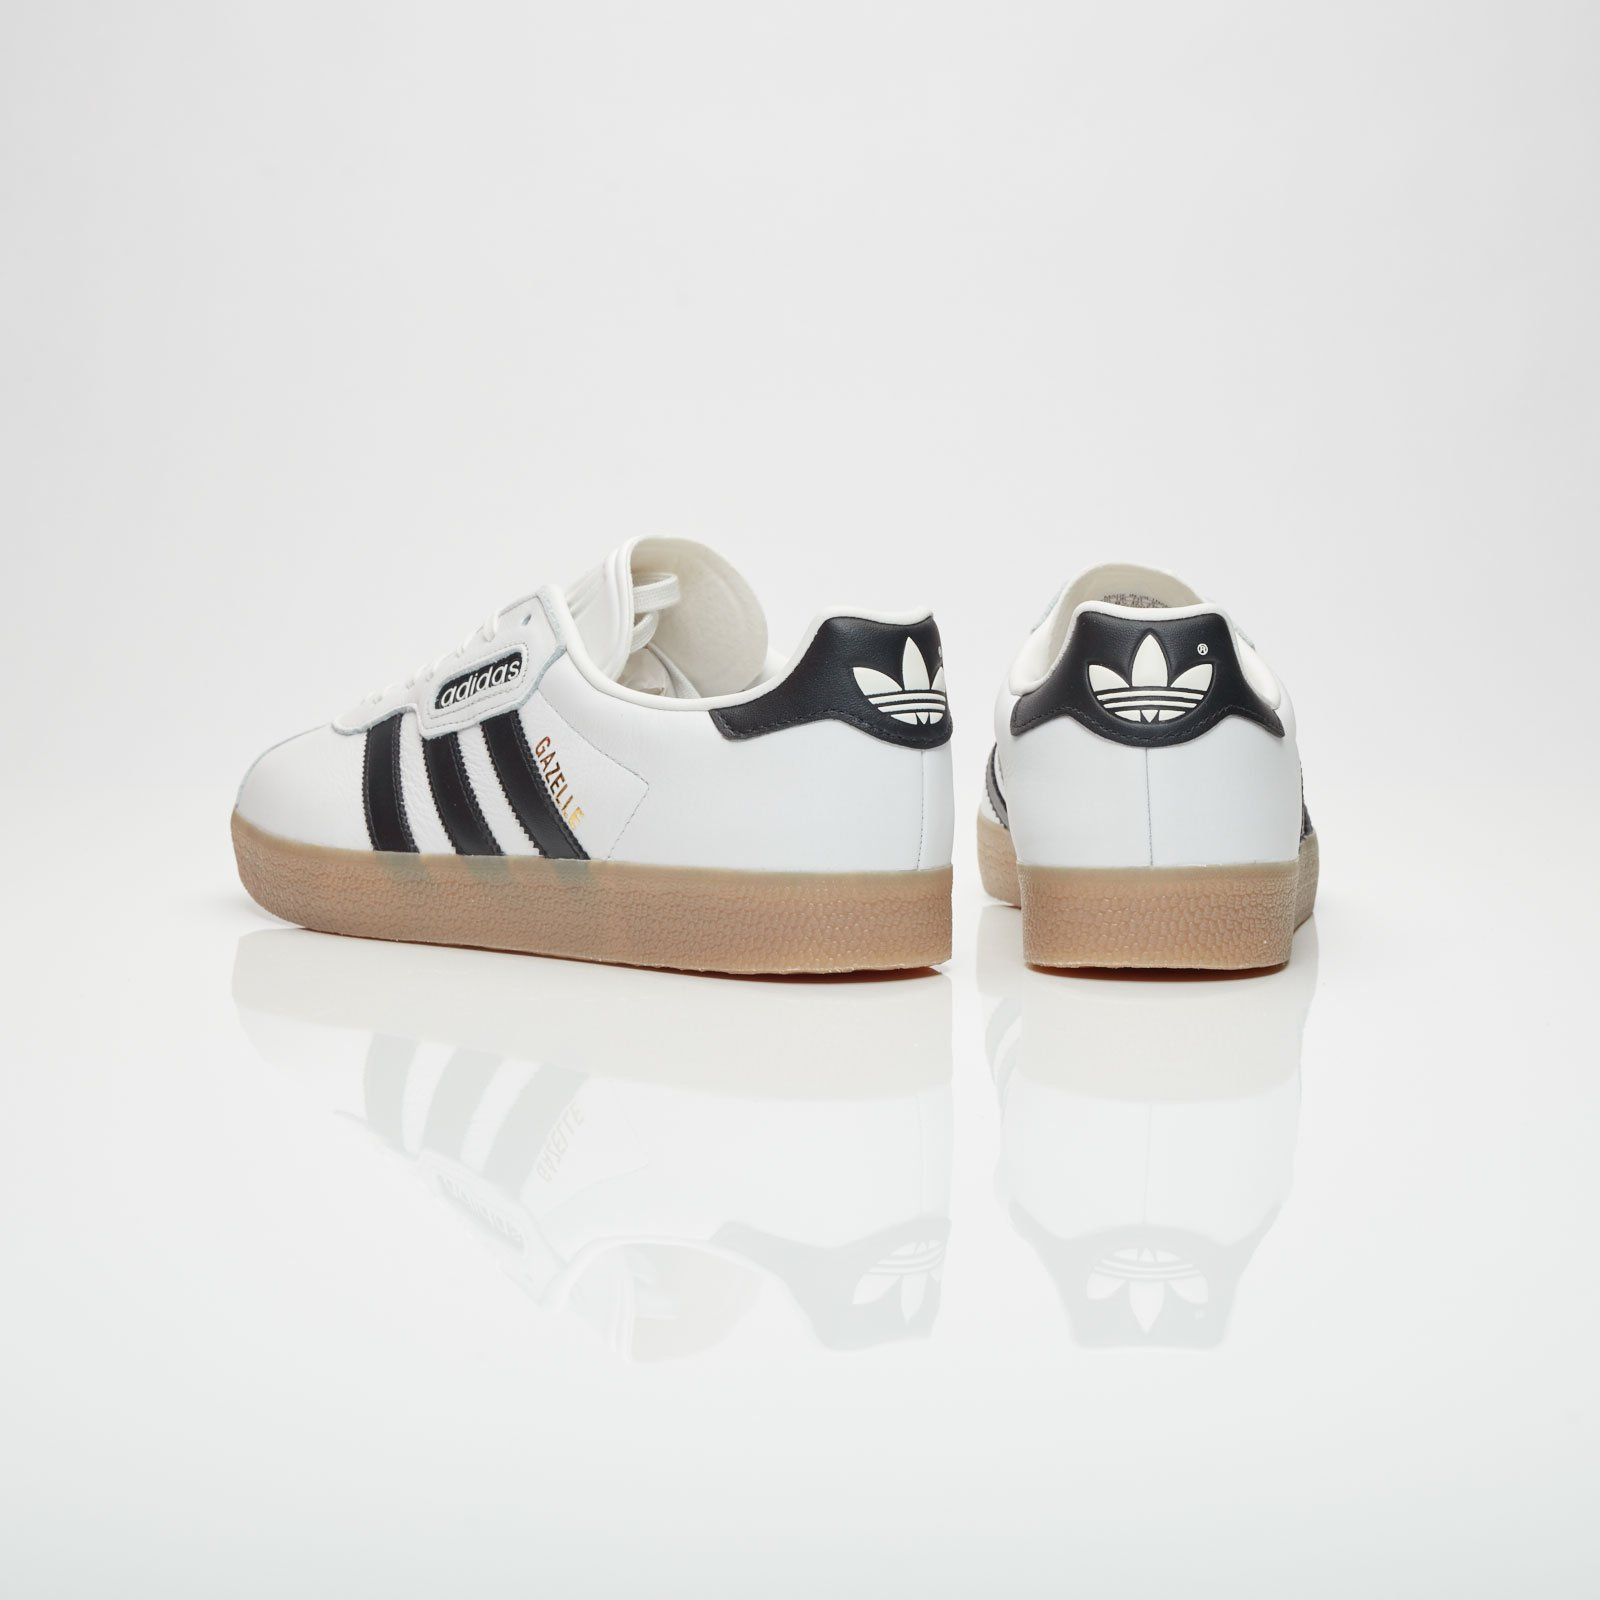 Adidas Gazelle Super Core Black Vintage White Gum Shoes